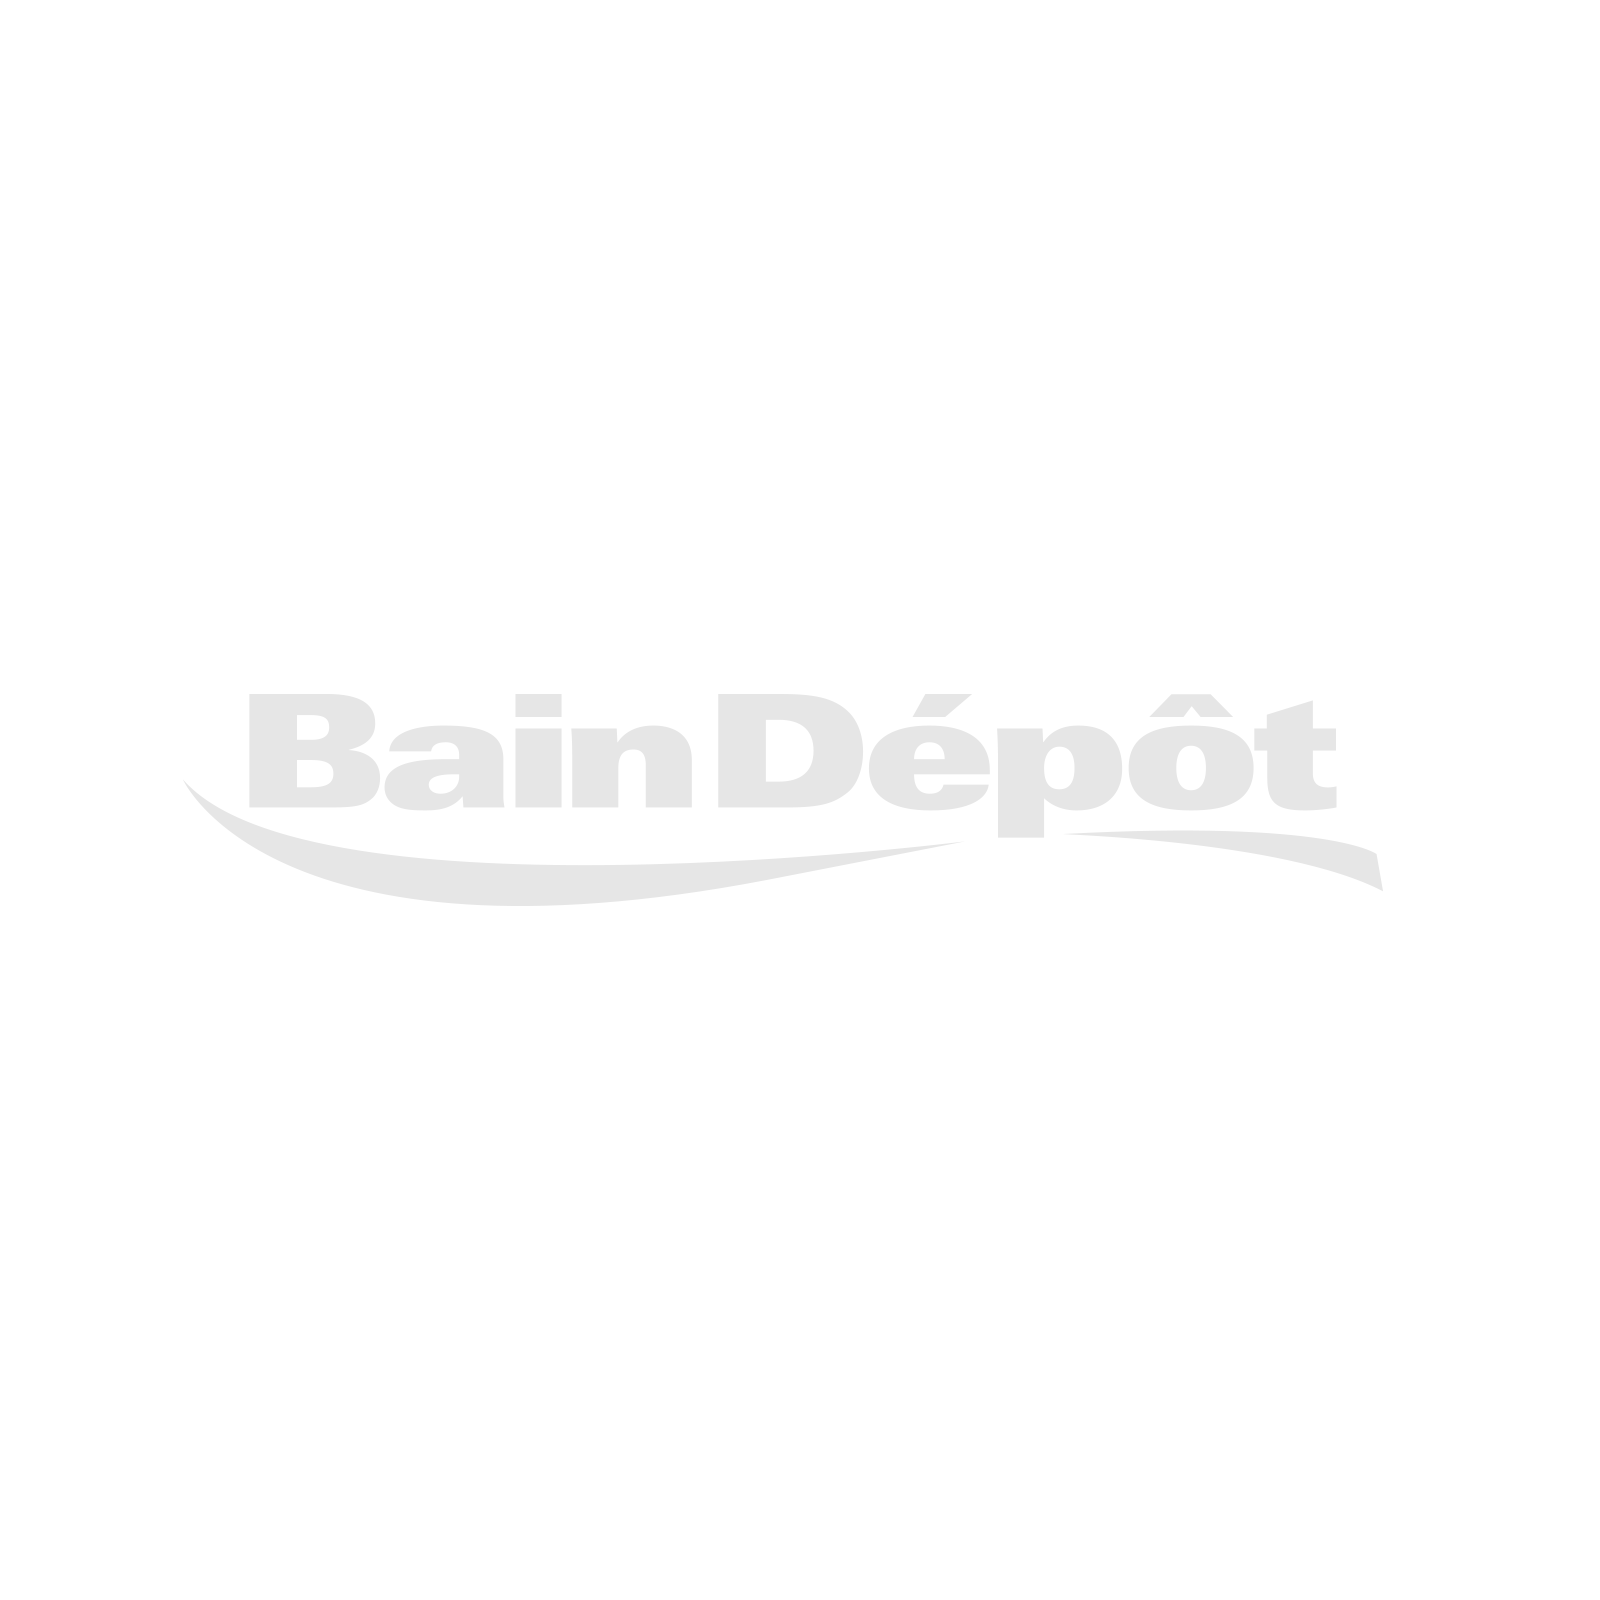 Upflush macerating pump toilet system BATHROOM ANYWHERE